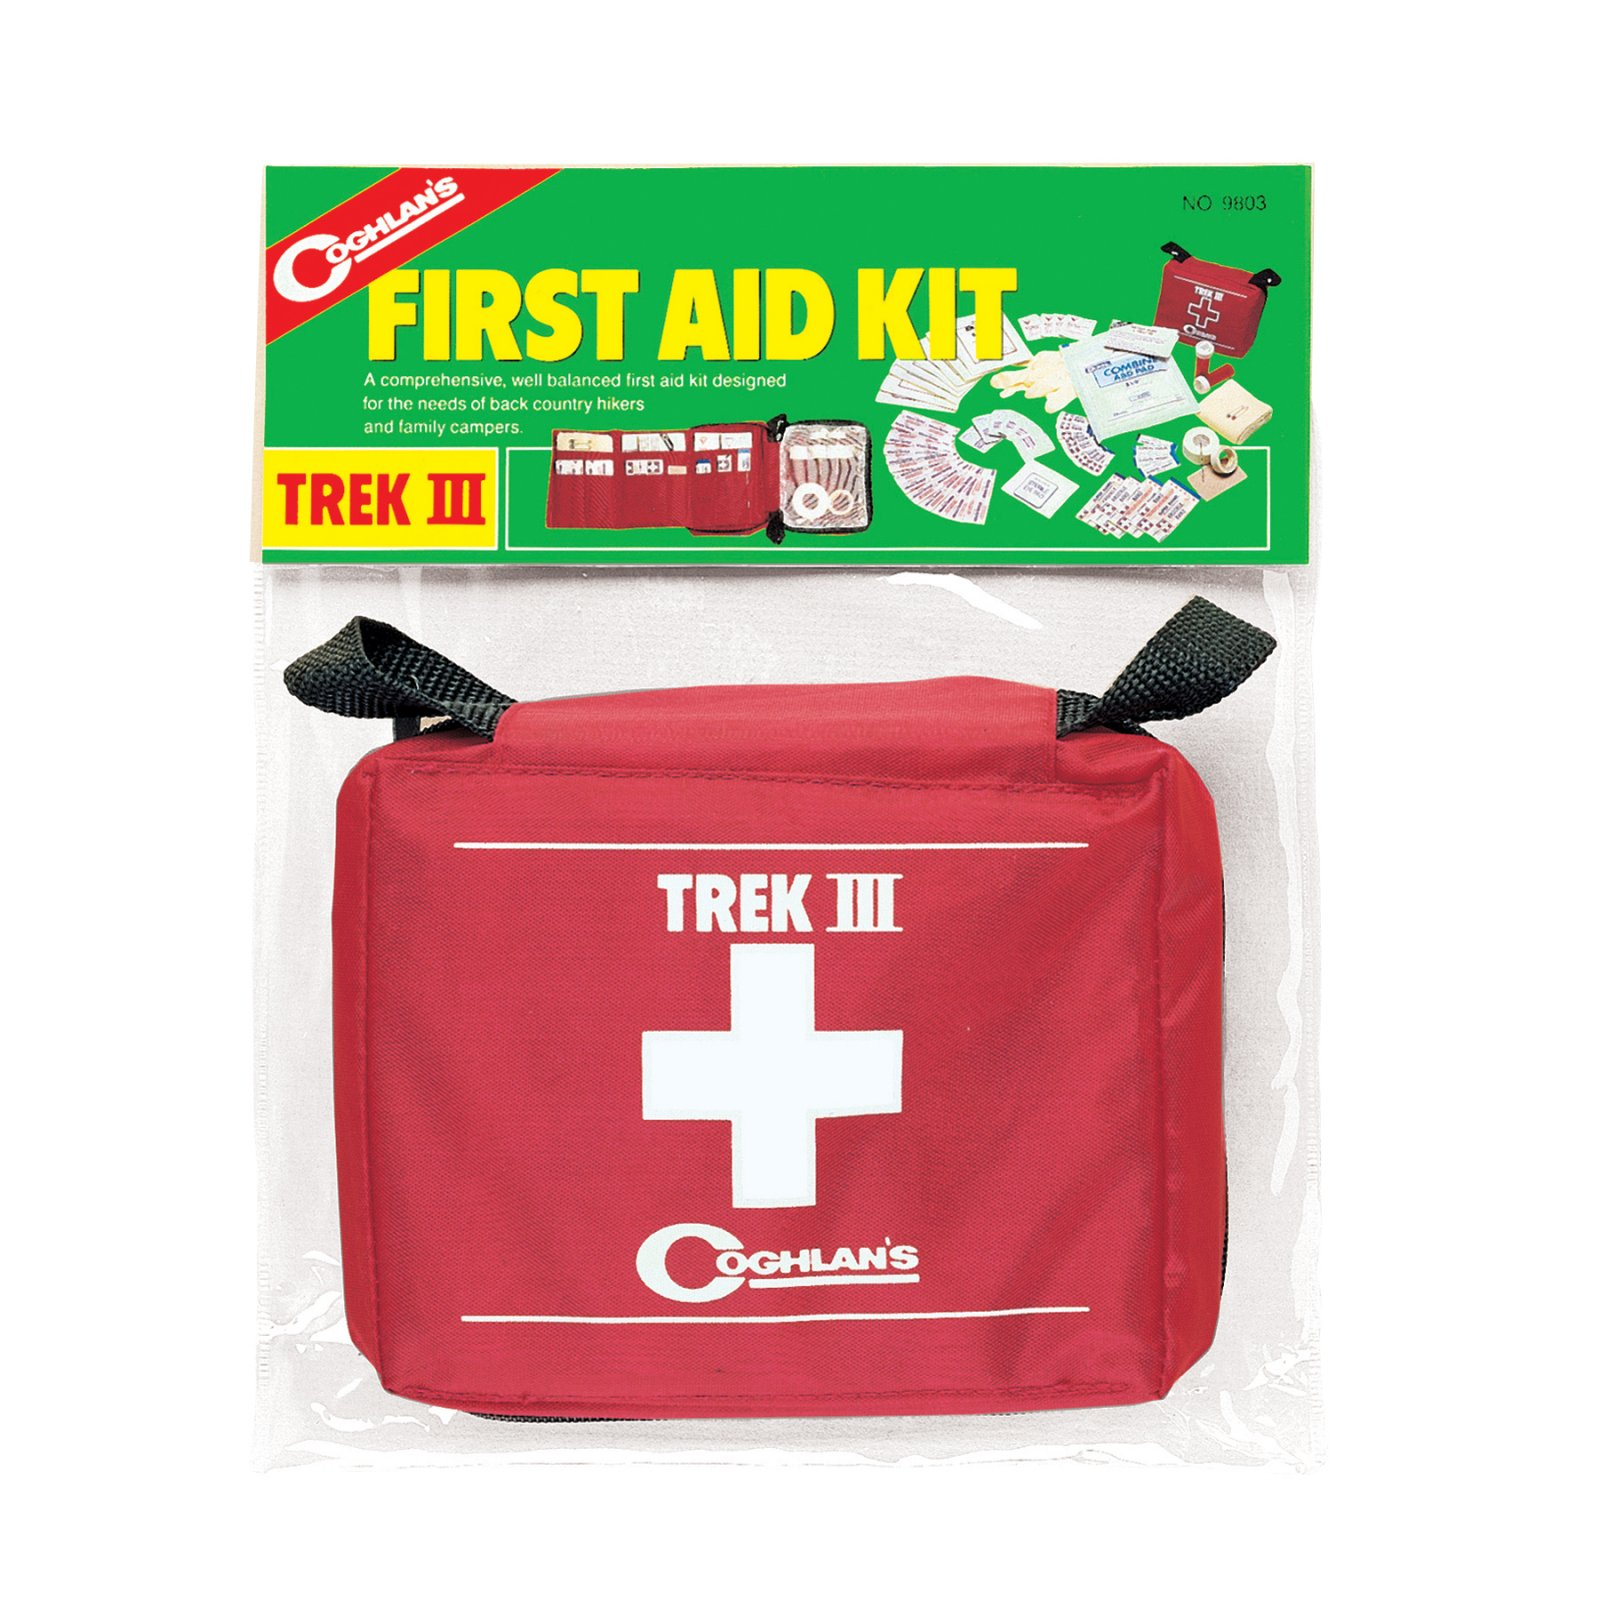 Coghlan's First Aid Kit Trek III 9803